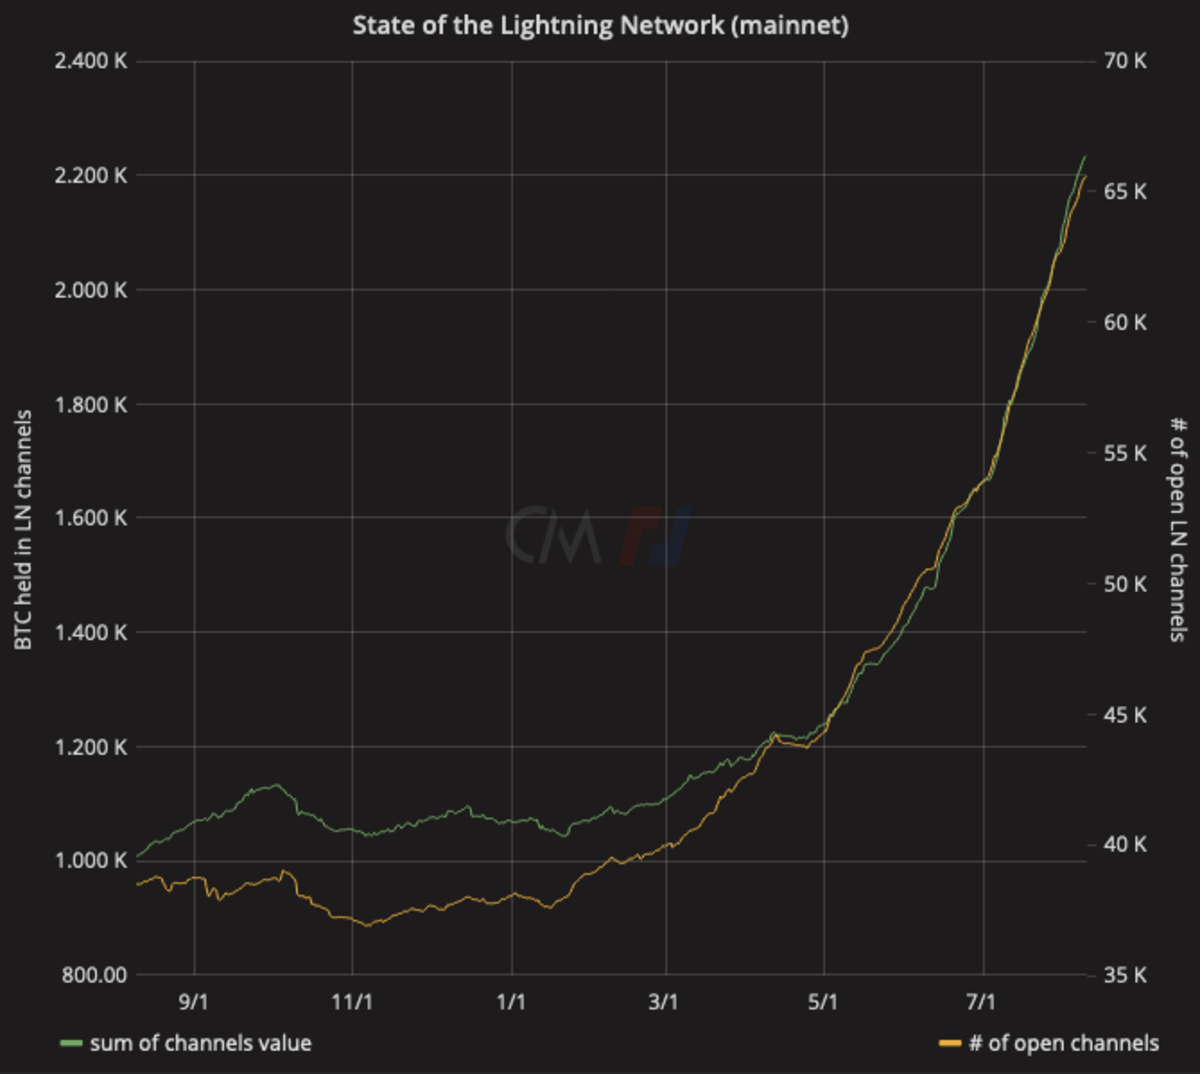 A one-year window of the state of the Lightning Network by Bitmex Research.